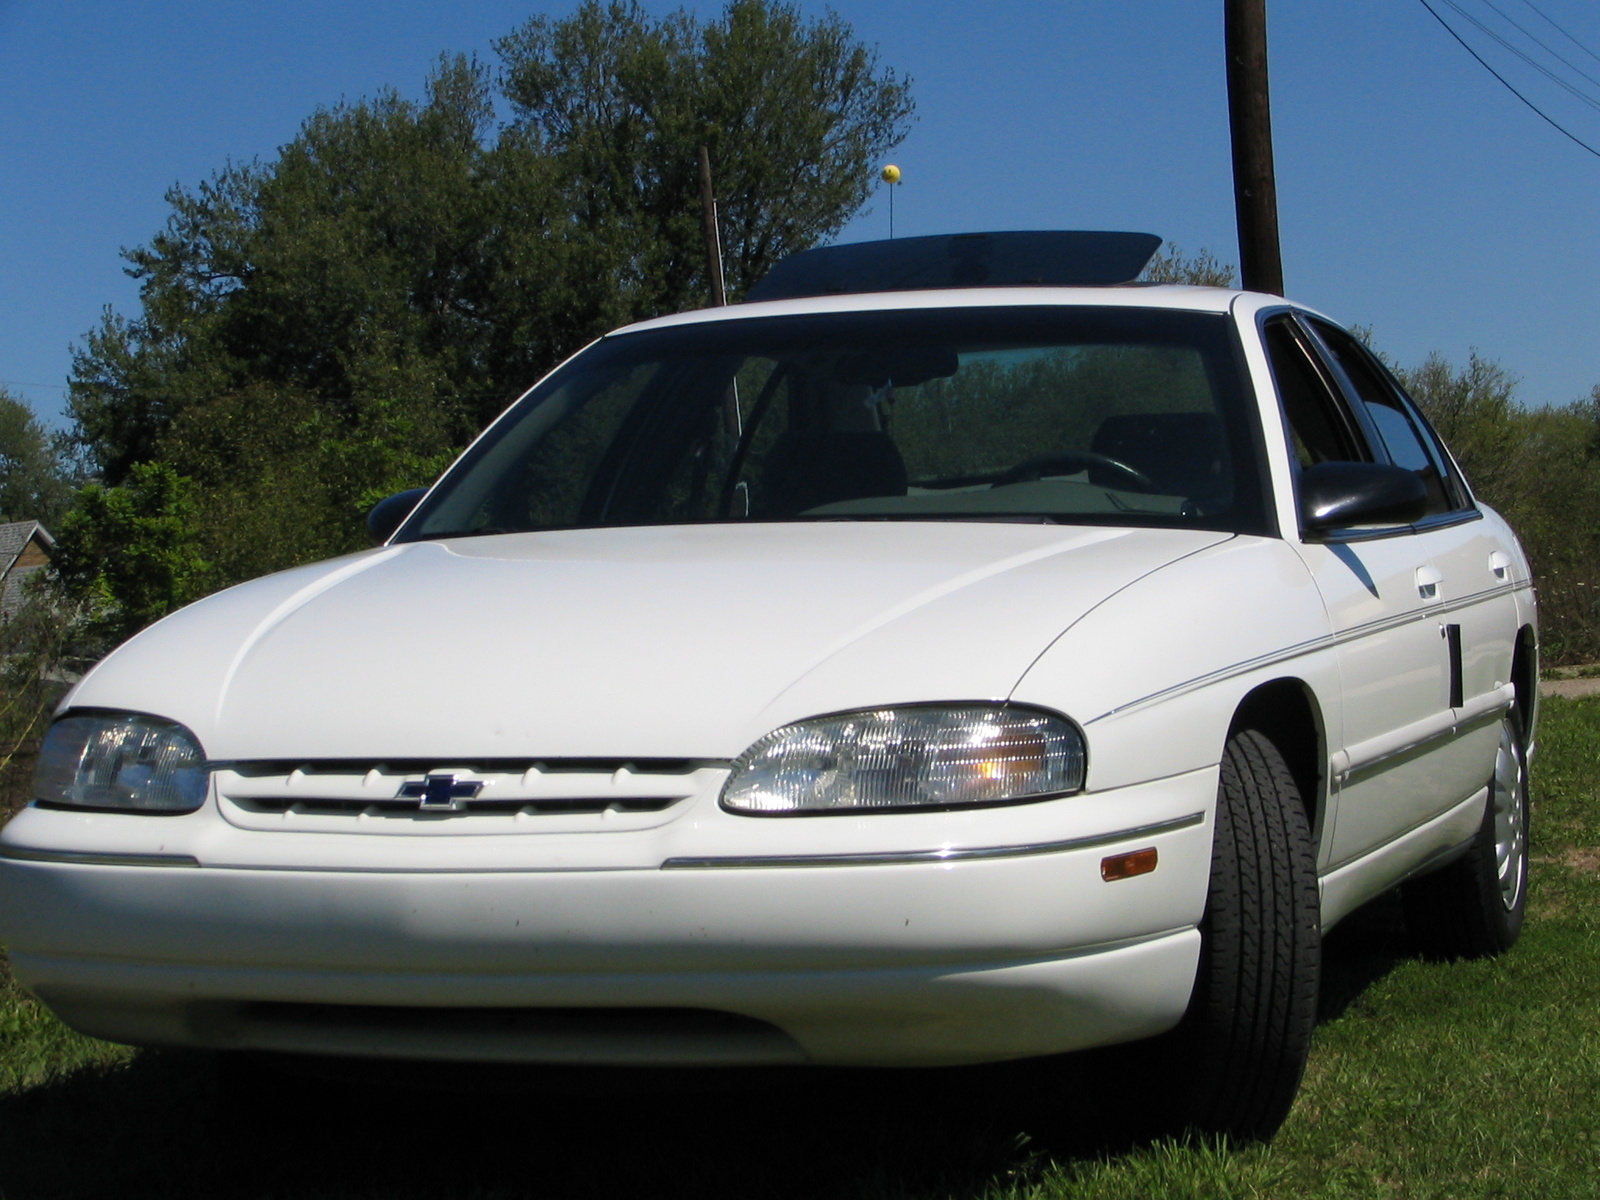 Picture of 1999 Chevrolet Lumina 4 Dr STD Sedan